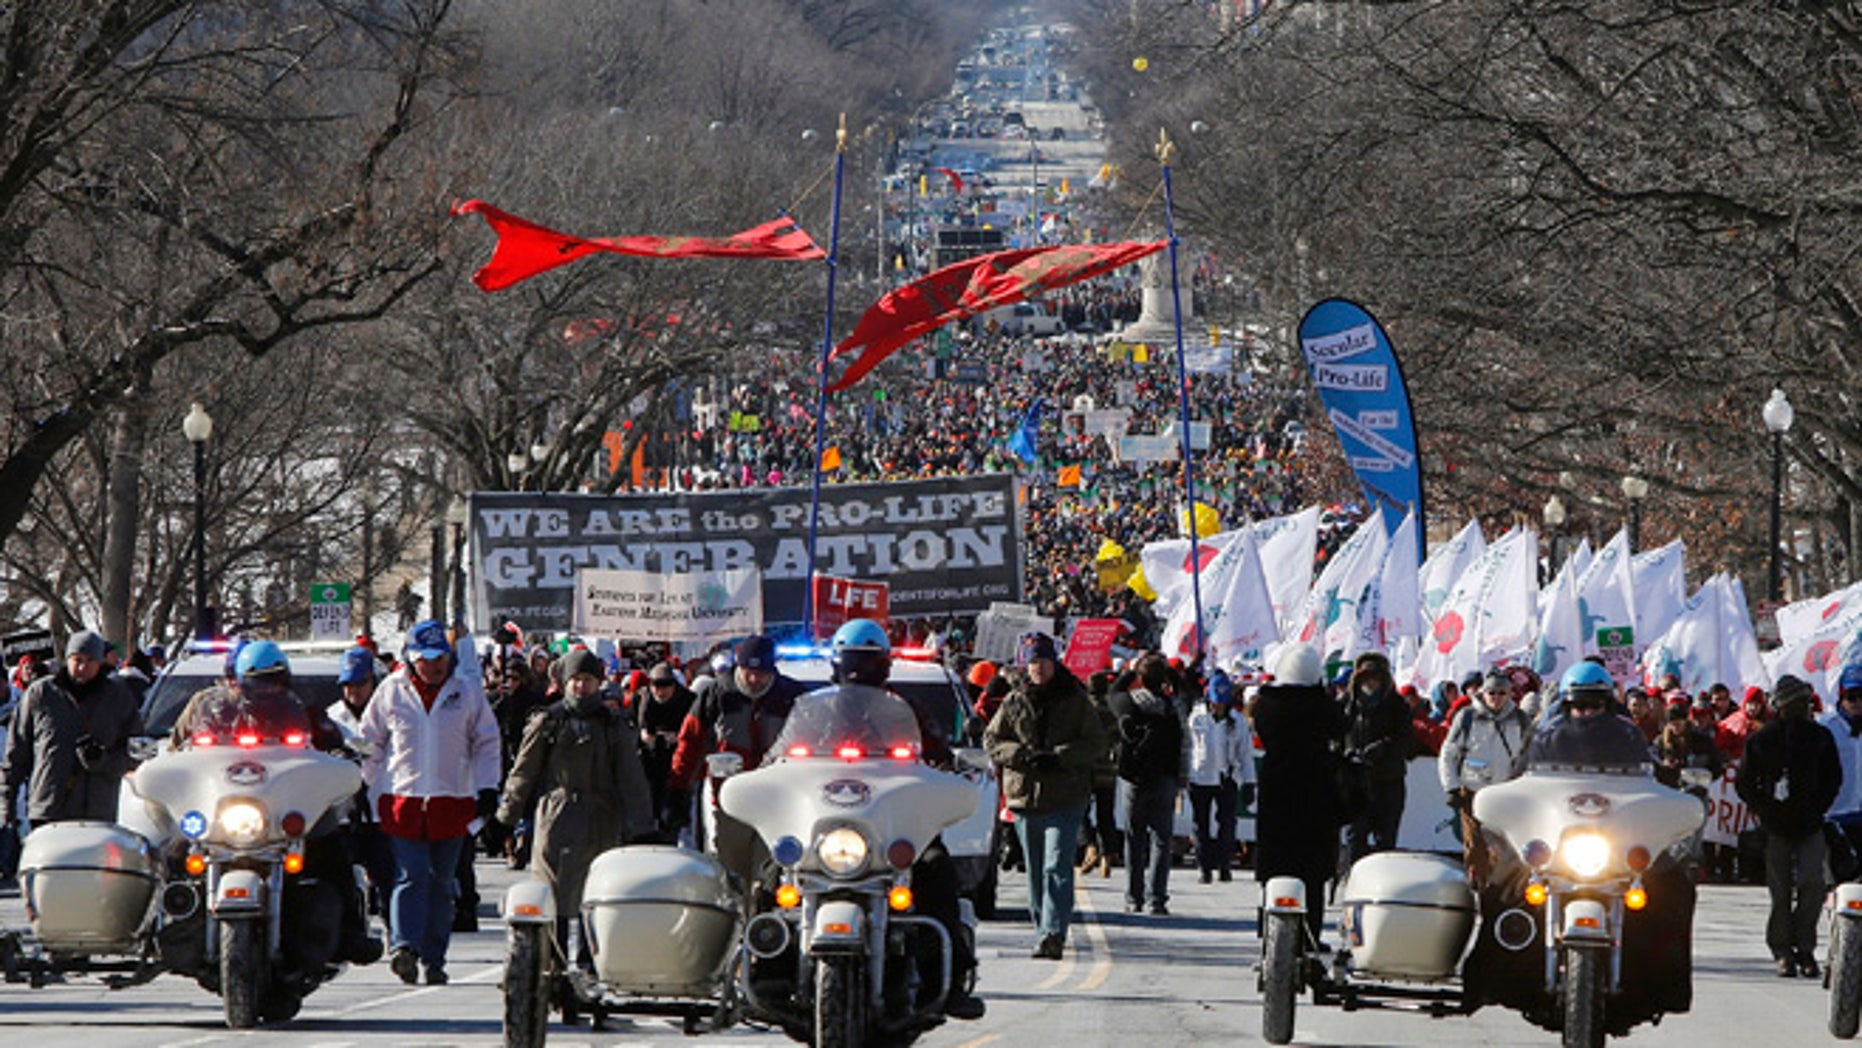 Jan 22. 2014: Anti-abortion demonstrators participate in the annual March for Life in Washington. (Reuters)